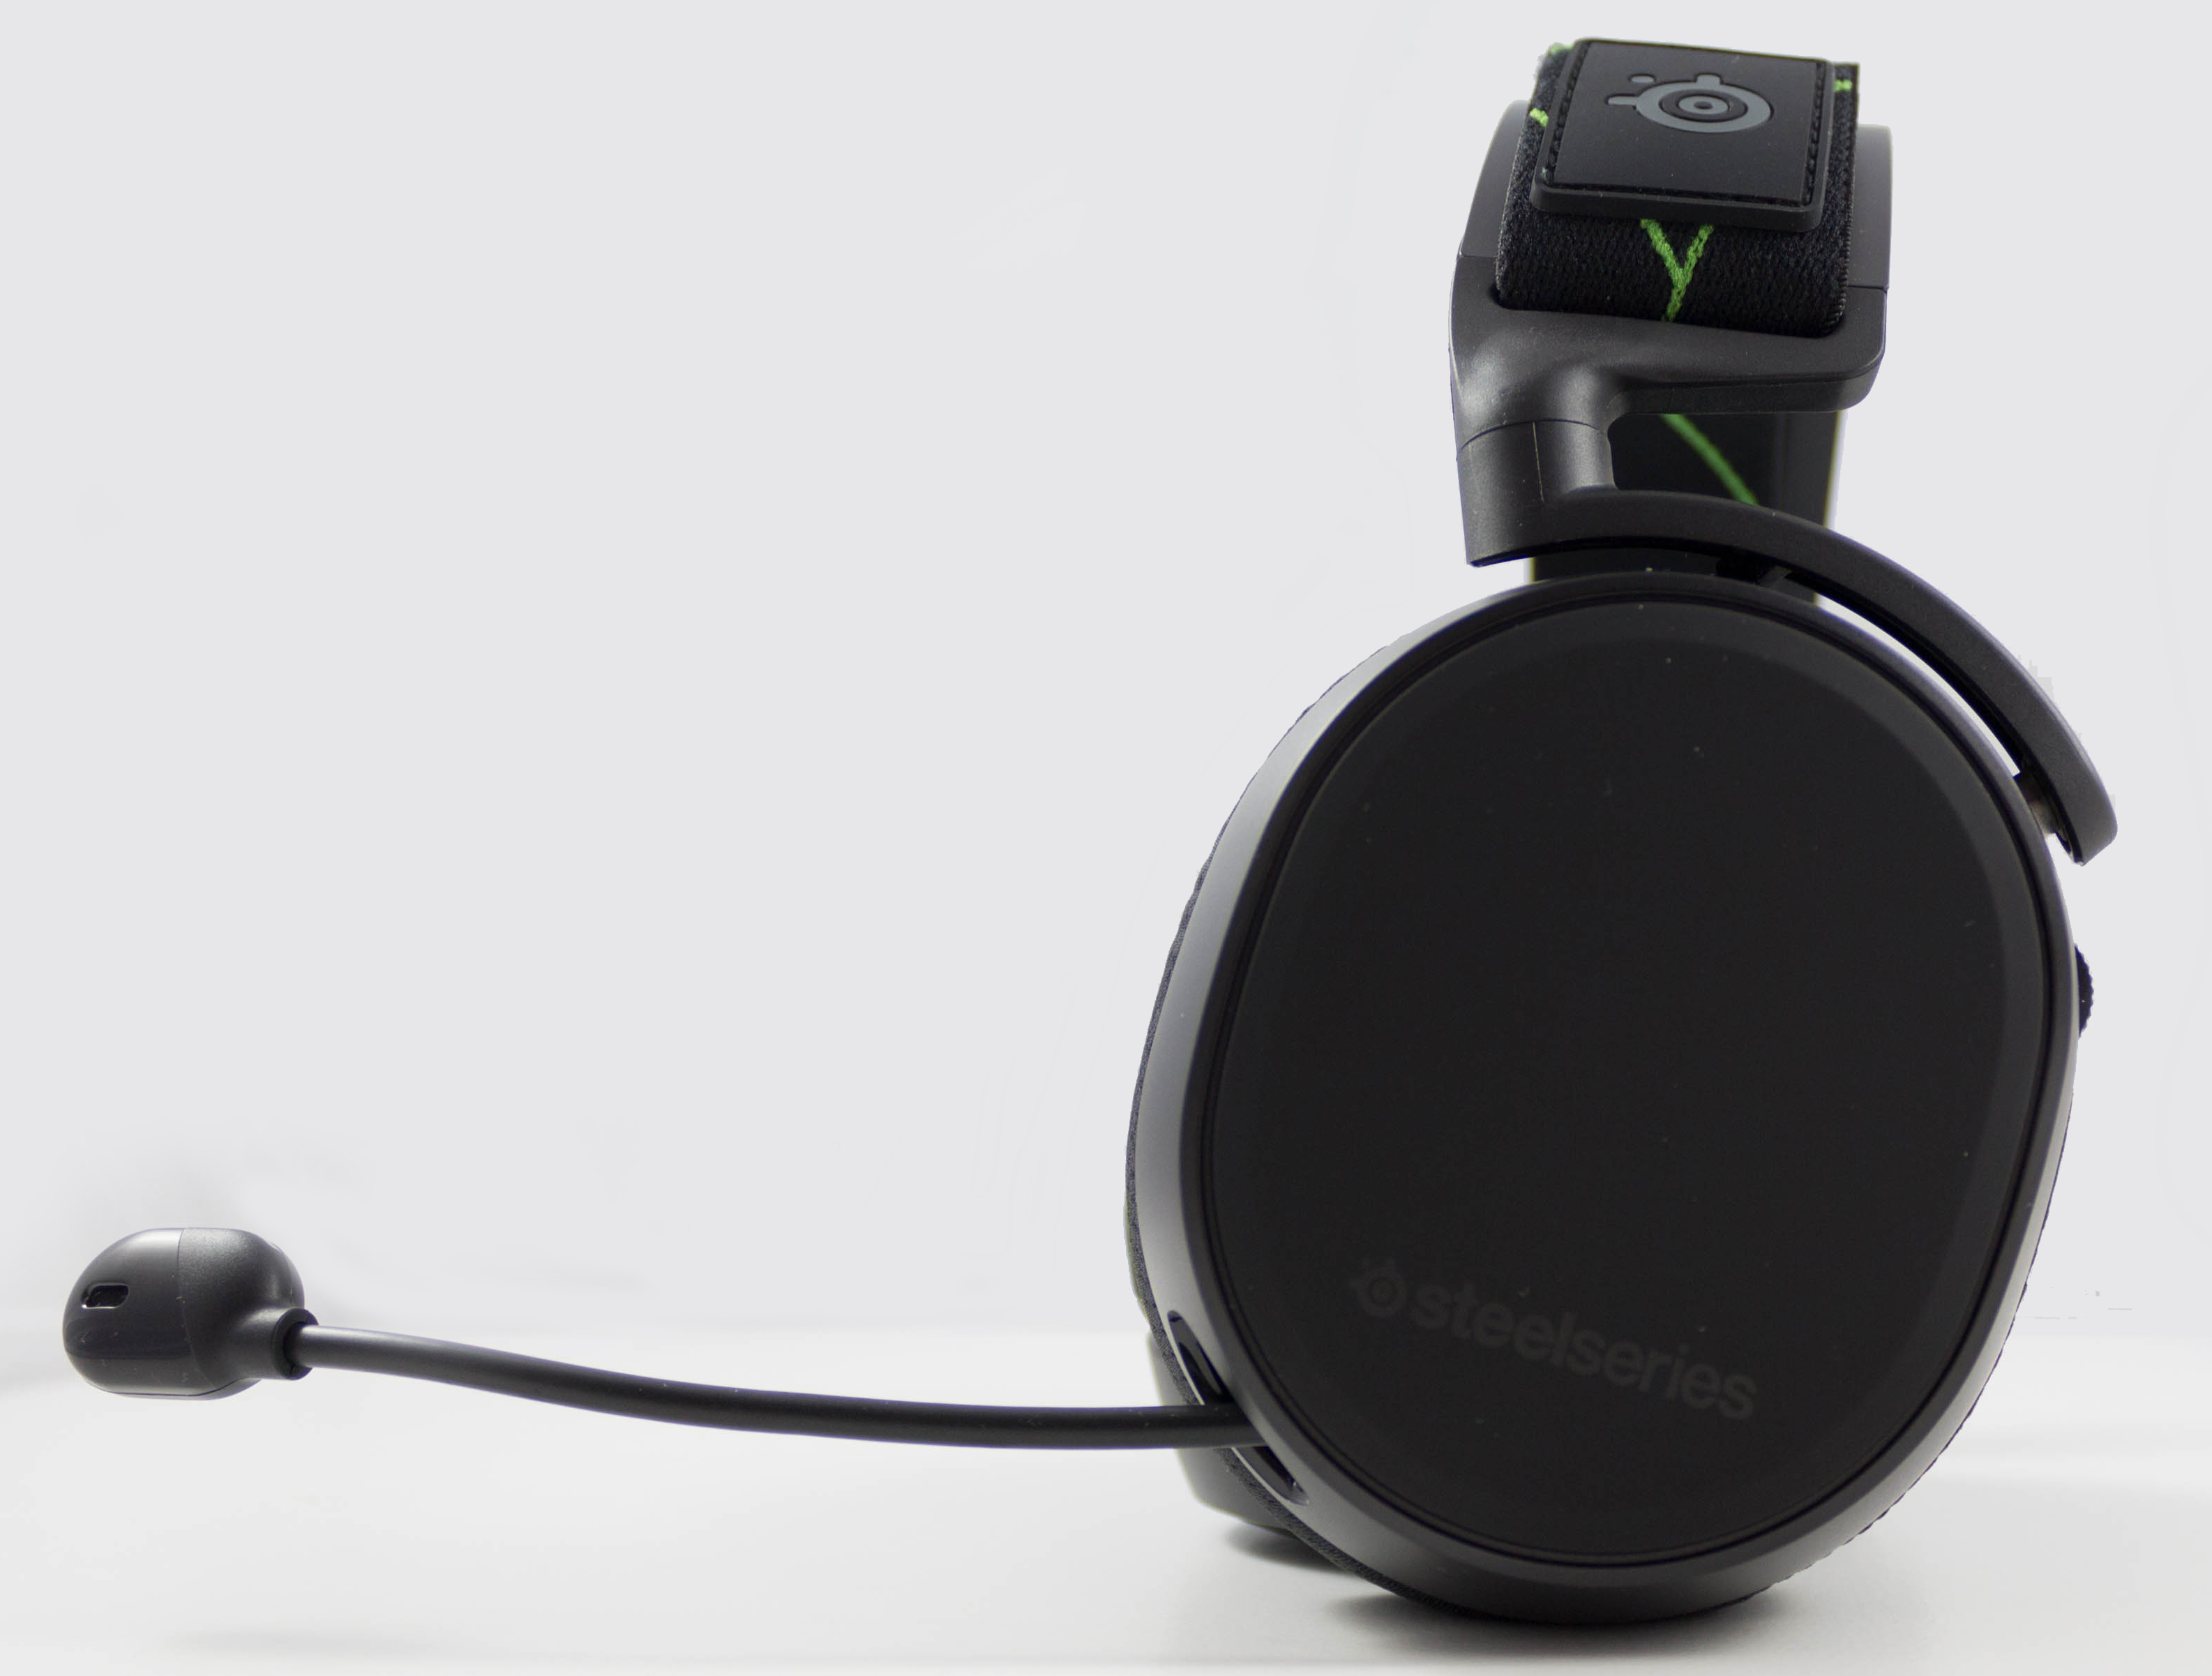 SteelSeries Launches The Arctis 9X Headset: X Marks The Xbox